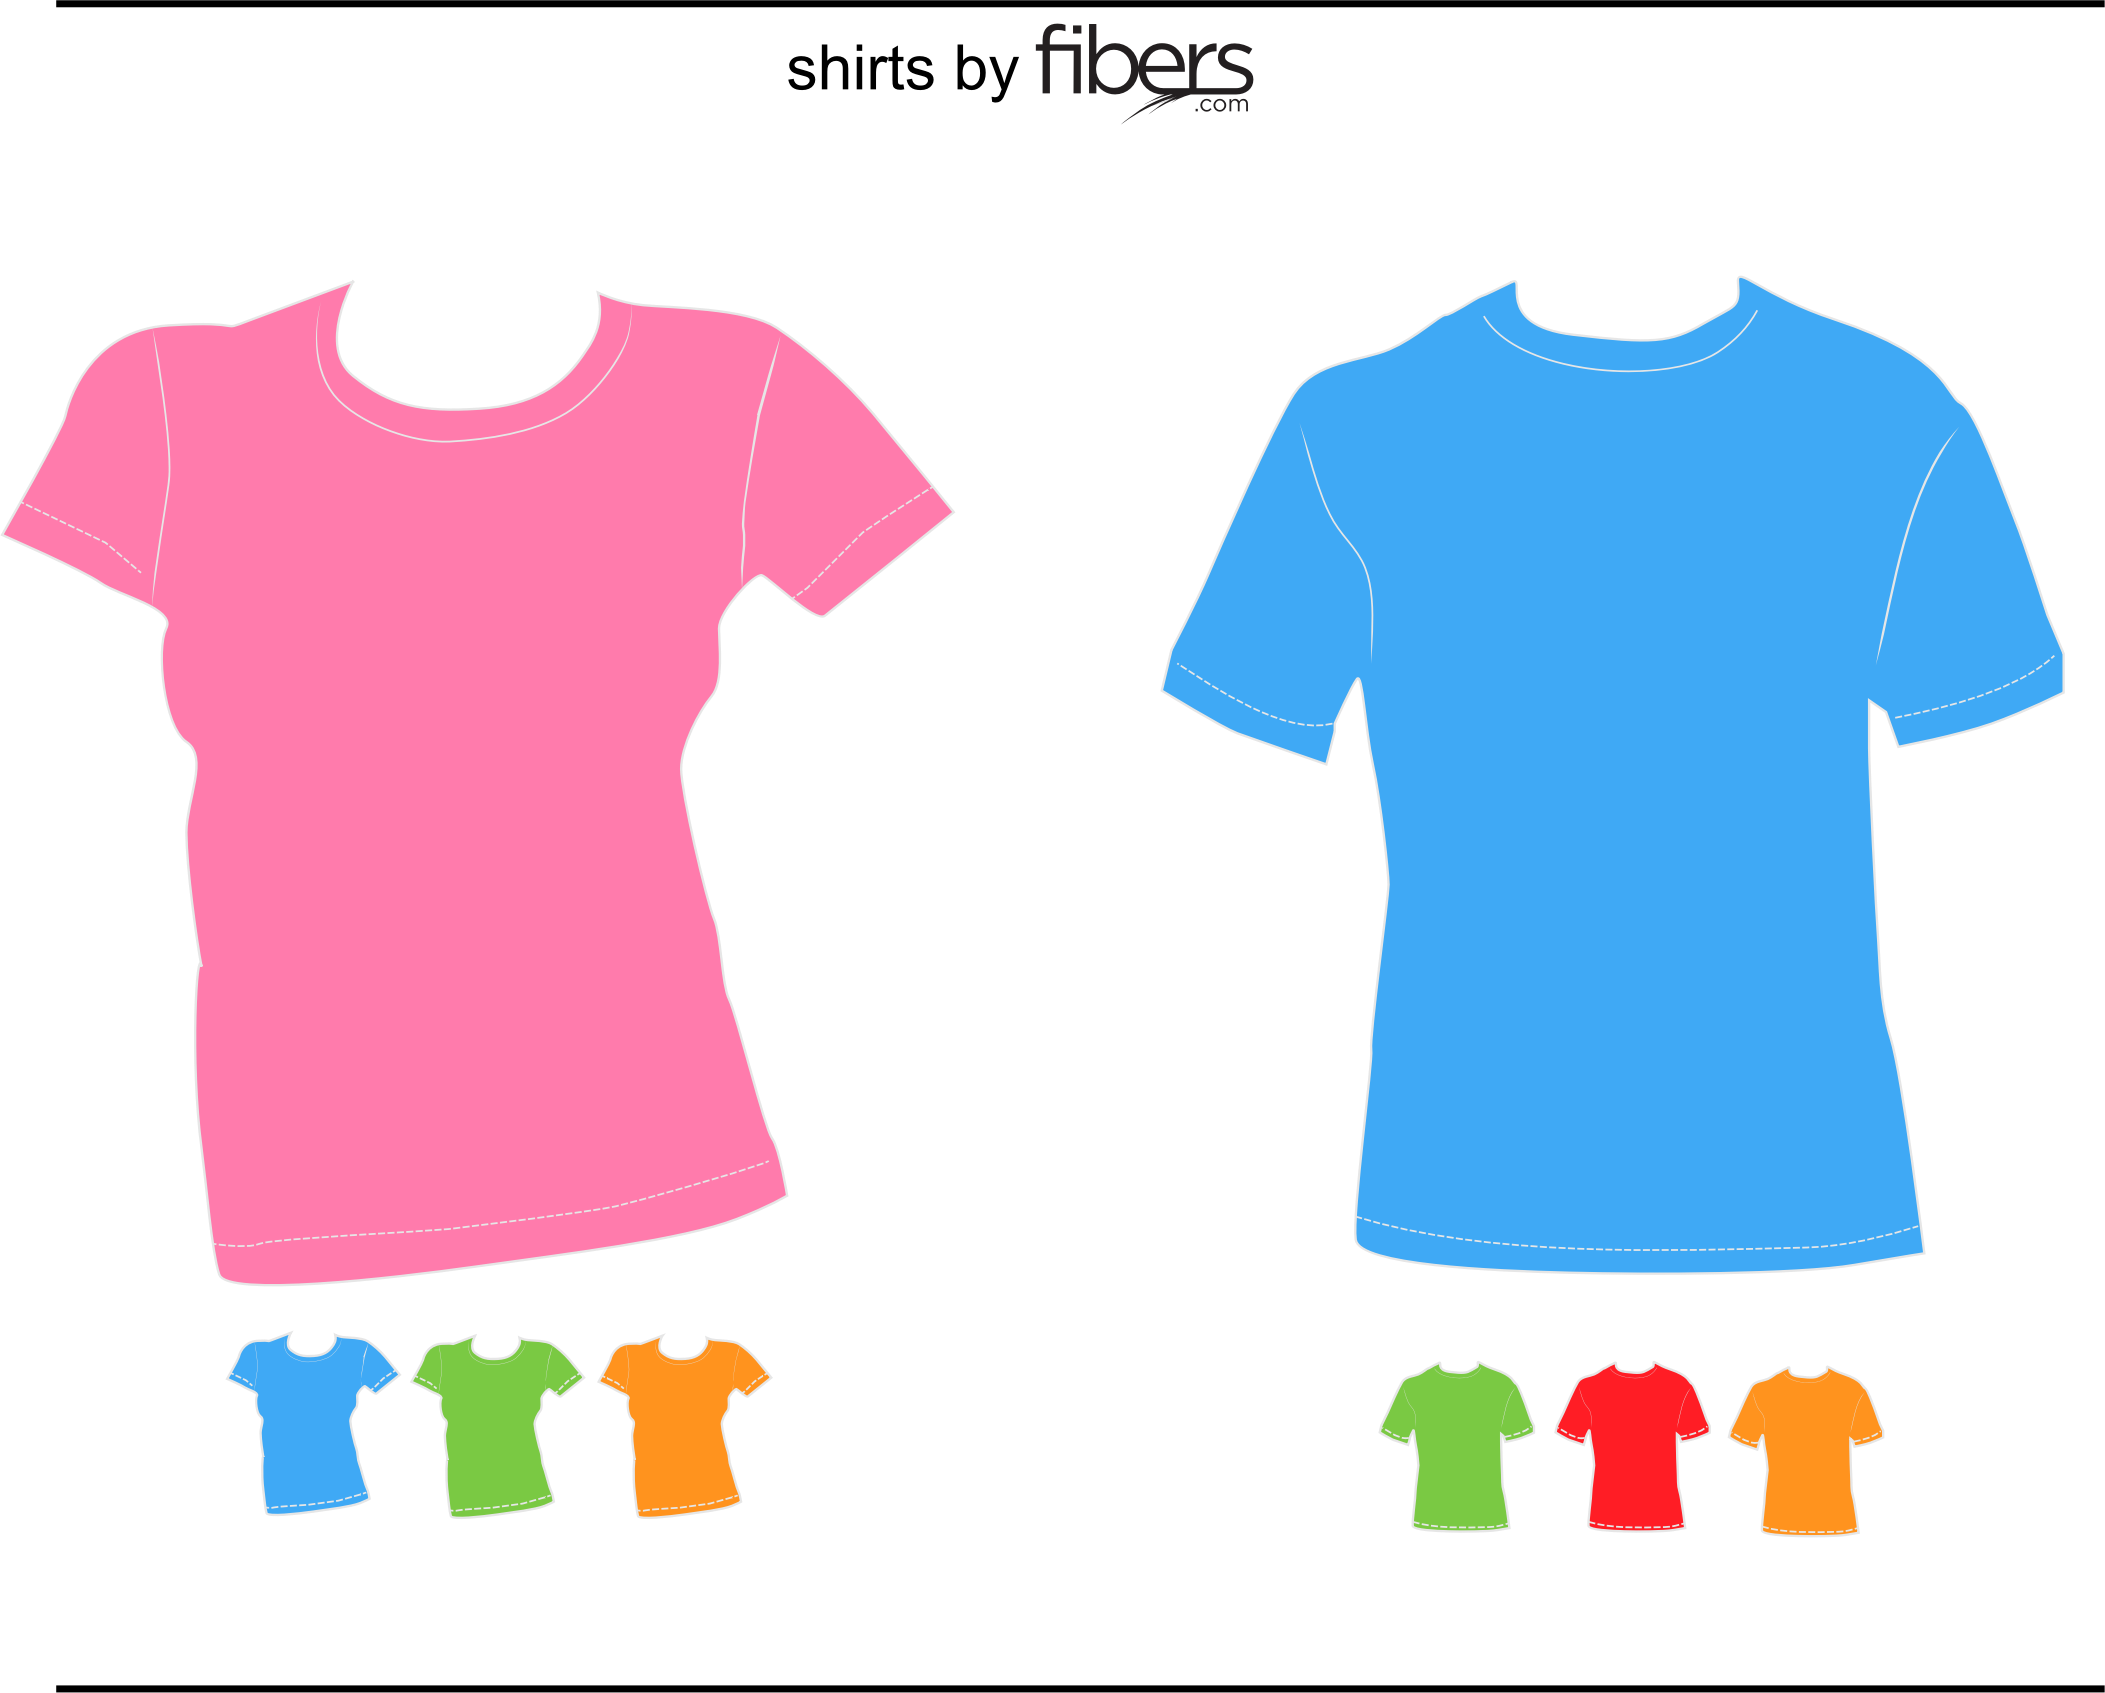 Clipart - Fibers.com Vector T-Shirt Templates